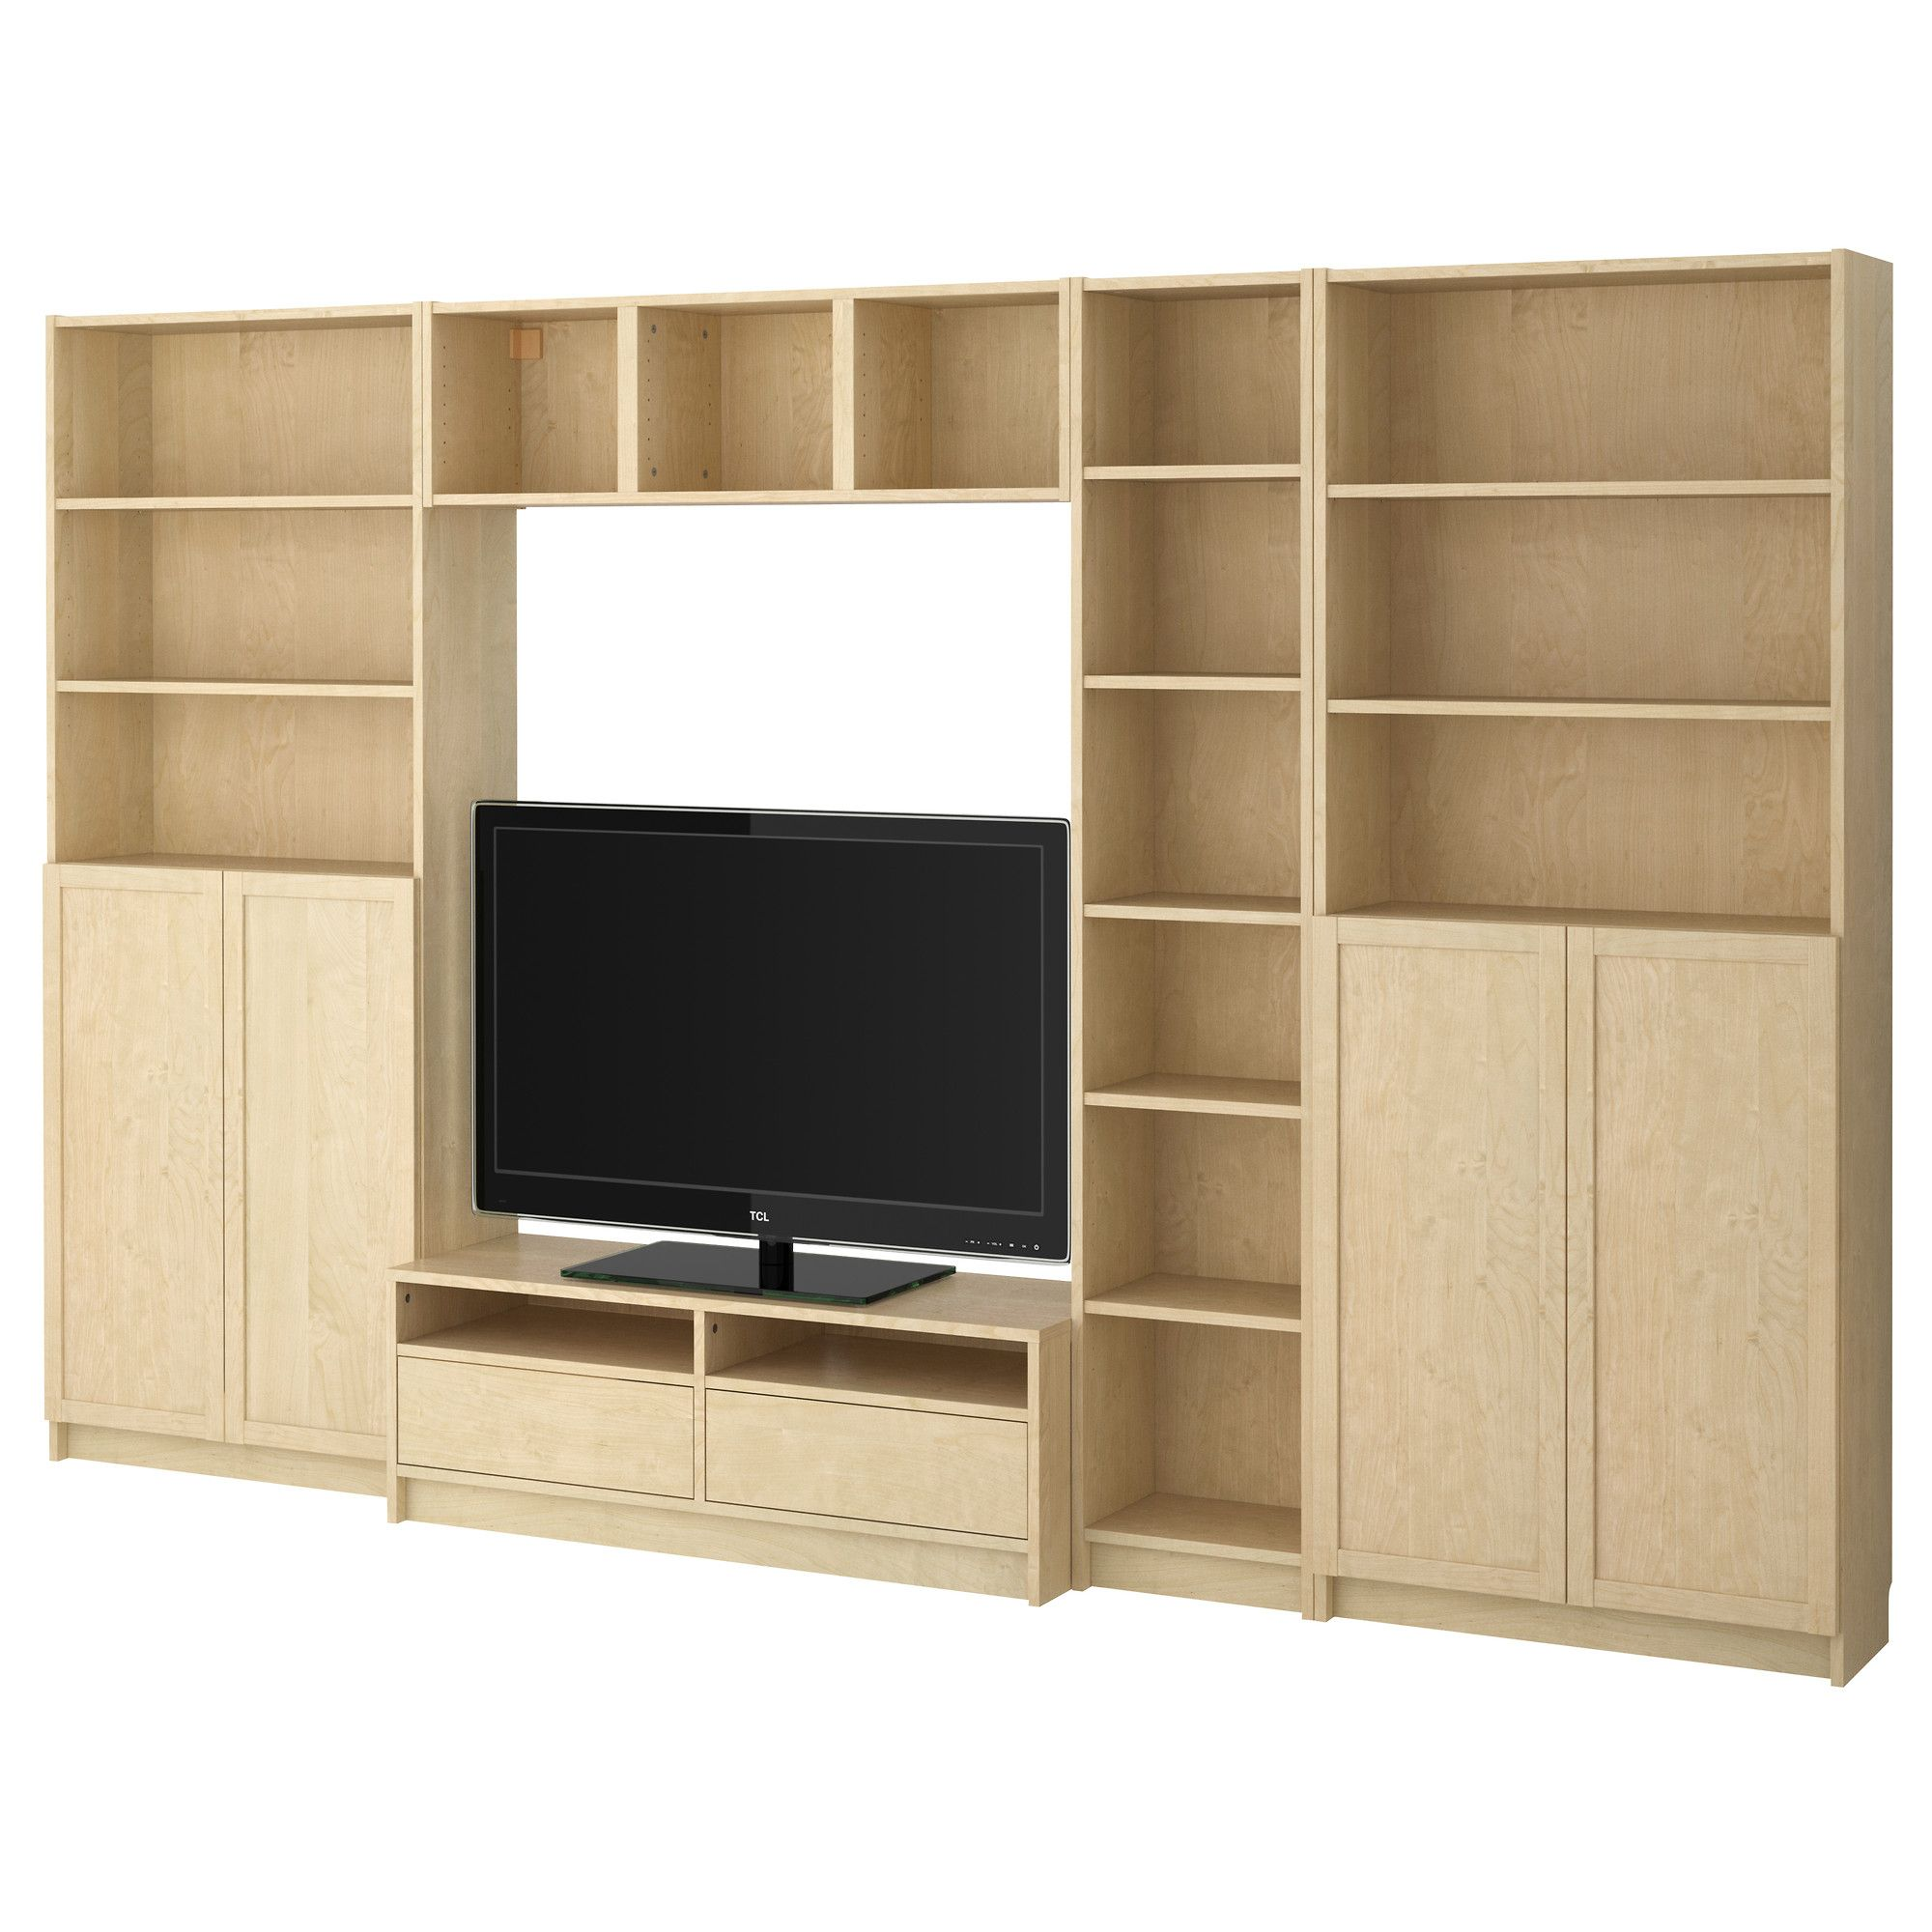 Meuble Tv Billy Billy Benno Tv Meubel Combi Ikea Home2 Pinterest